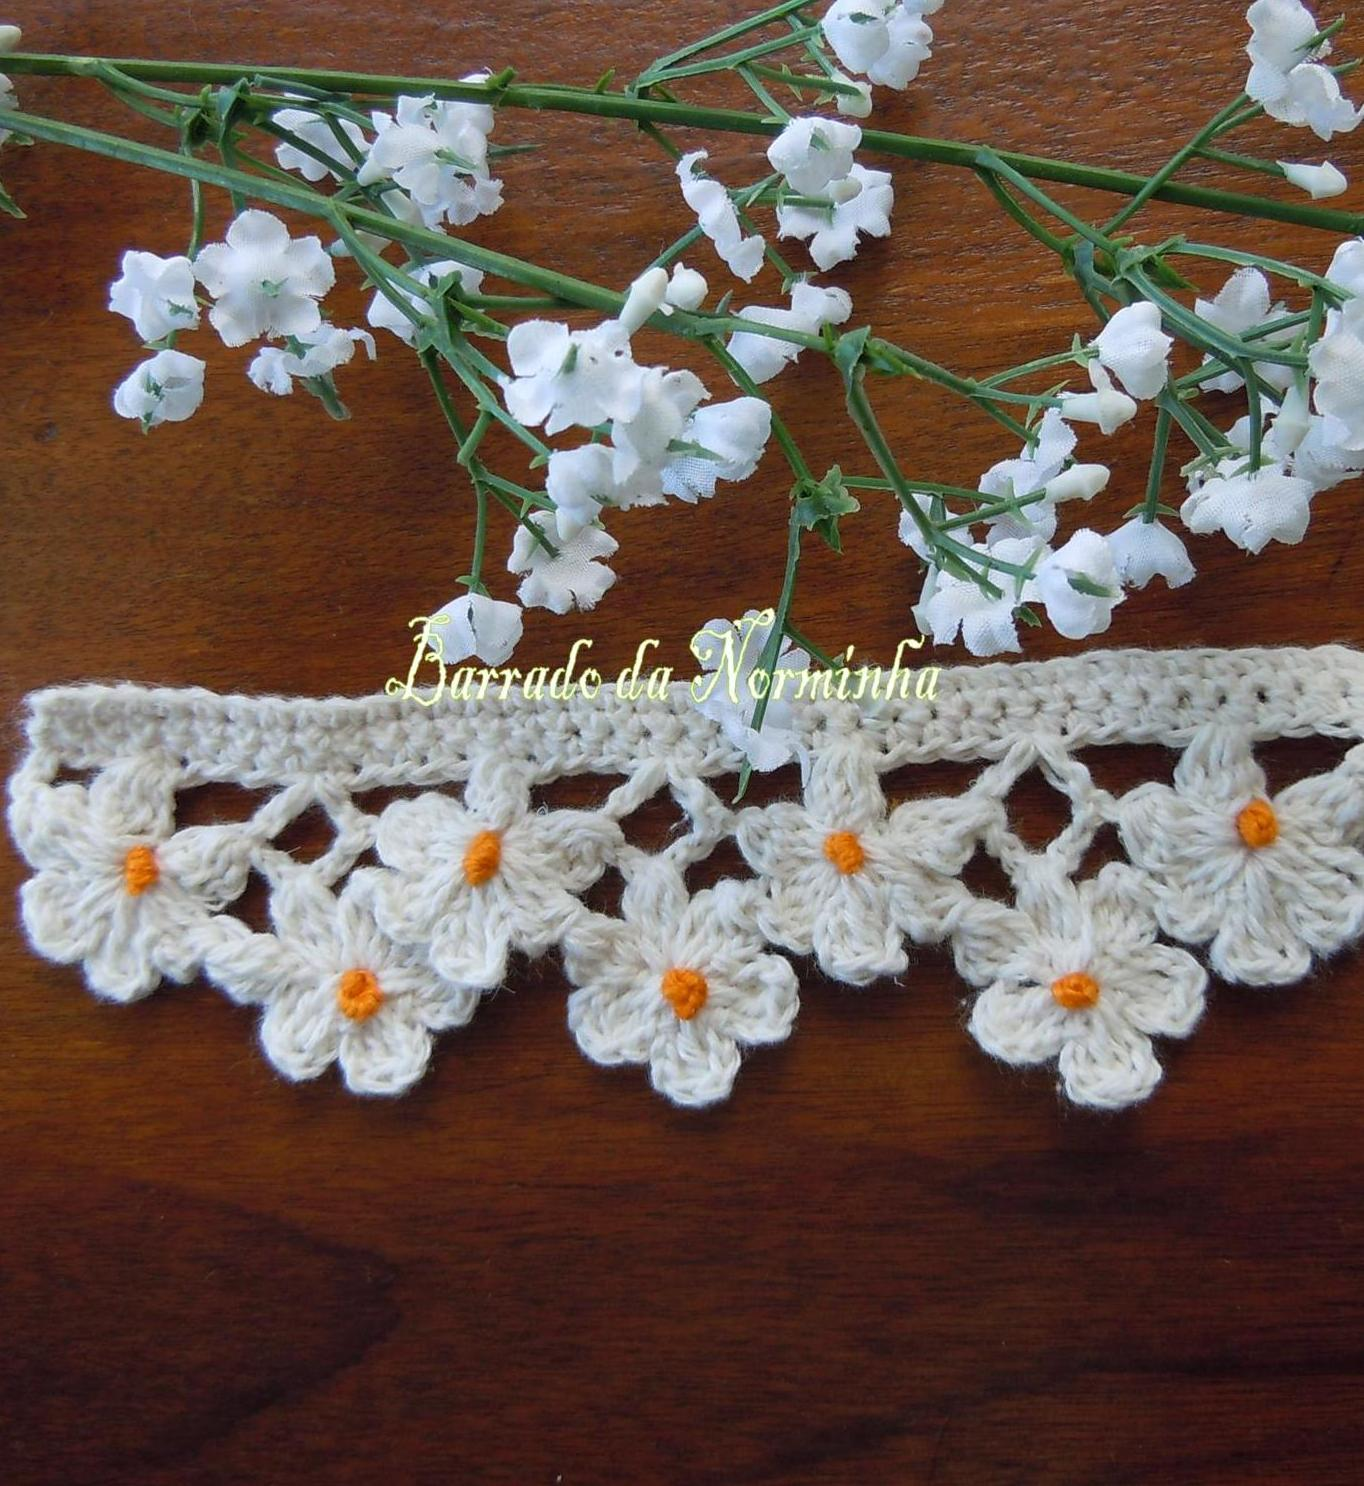 Crochet Edging Patterns : ... Crochet Trim, Ponto Preso1, Crochet Edgings, Crochet Flower Edging, Um